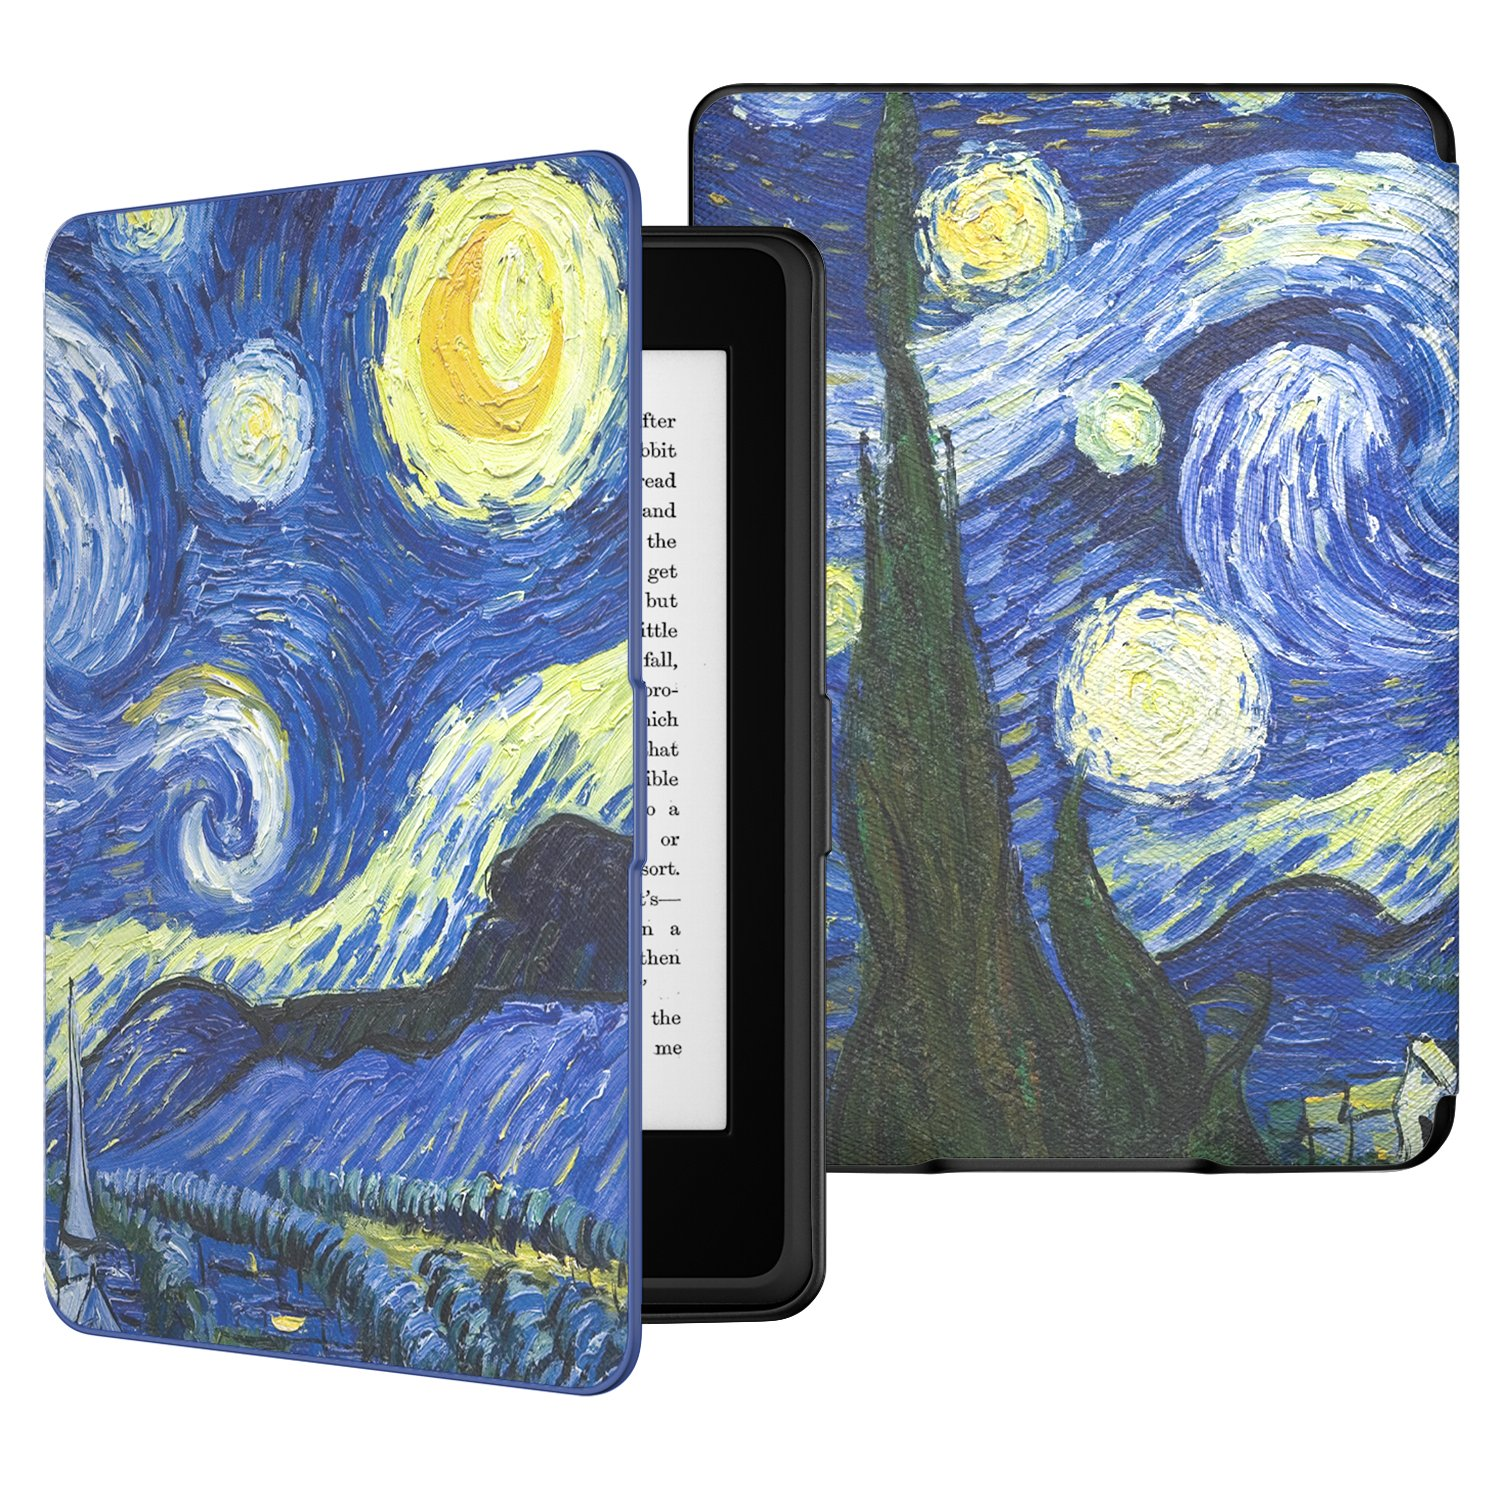 MoKo Case for Kindle Paperwhite, Premium Thinnest and Lightest PU Leather Cover with Auto Wake/Sleep for Amazon All-New Kindle Paperwhite (Fits 2012, 2013, 2015 and 2016 Versions), Starry Night by MoKo (Image #1)